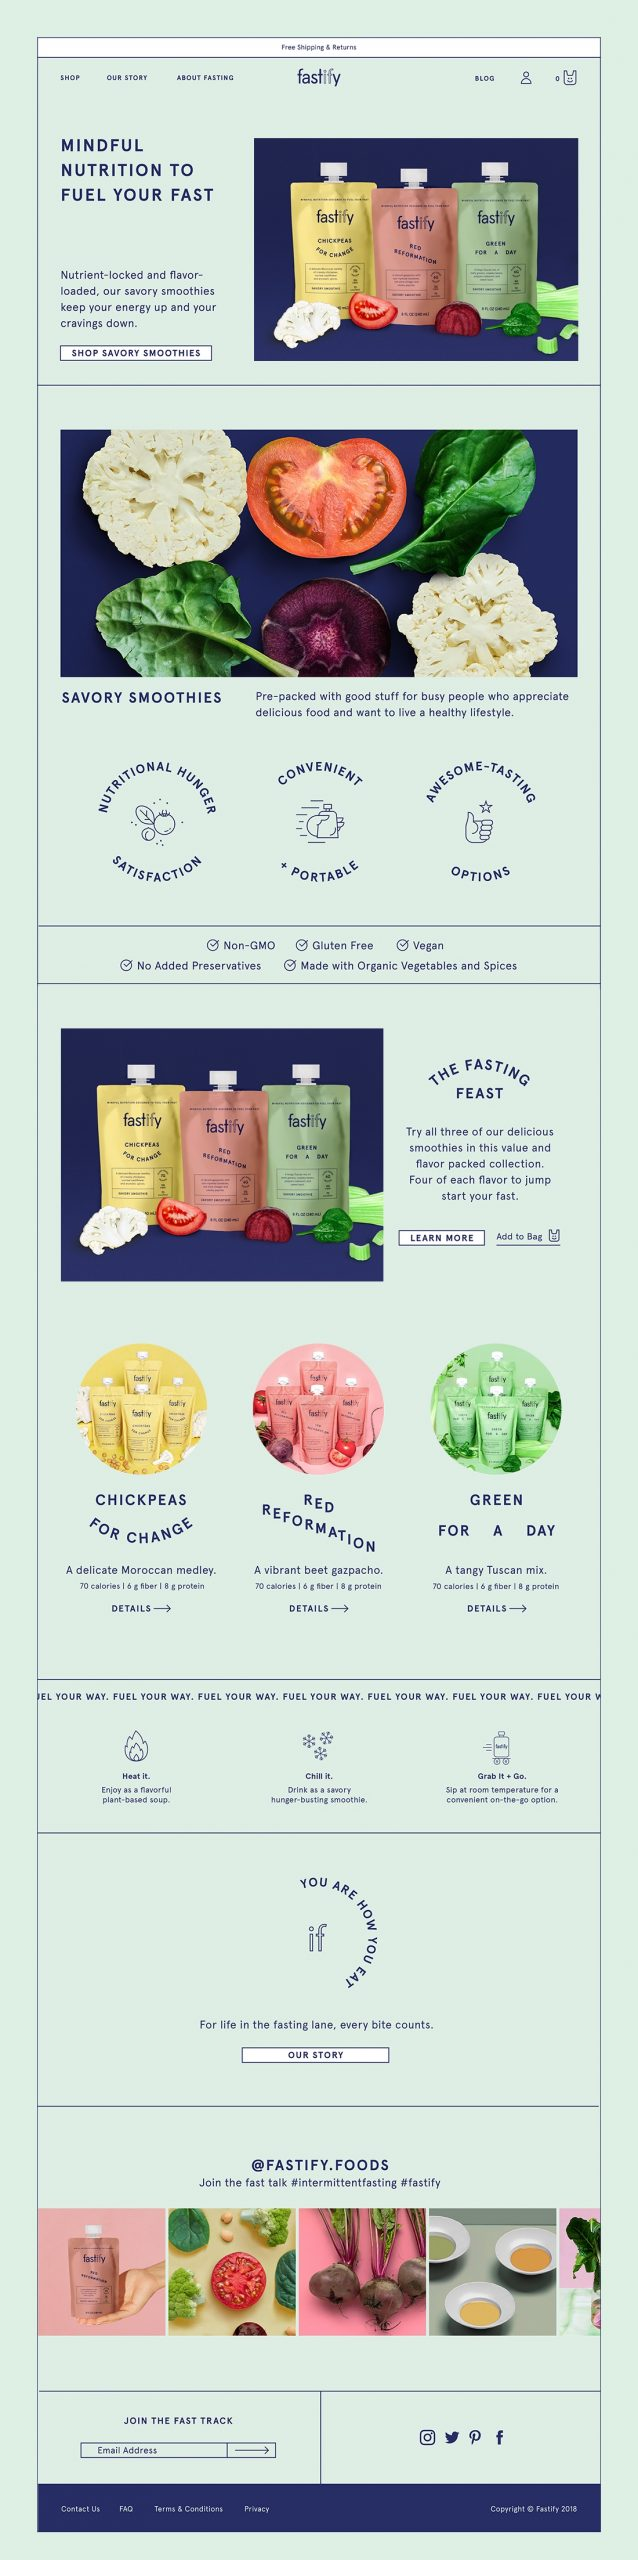 Fastify Food Identity + Packaging | Bartlett Brands